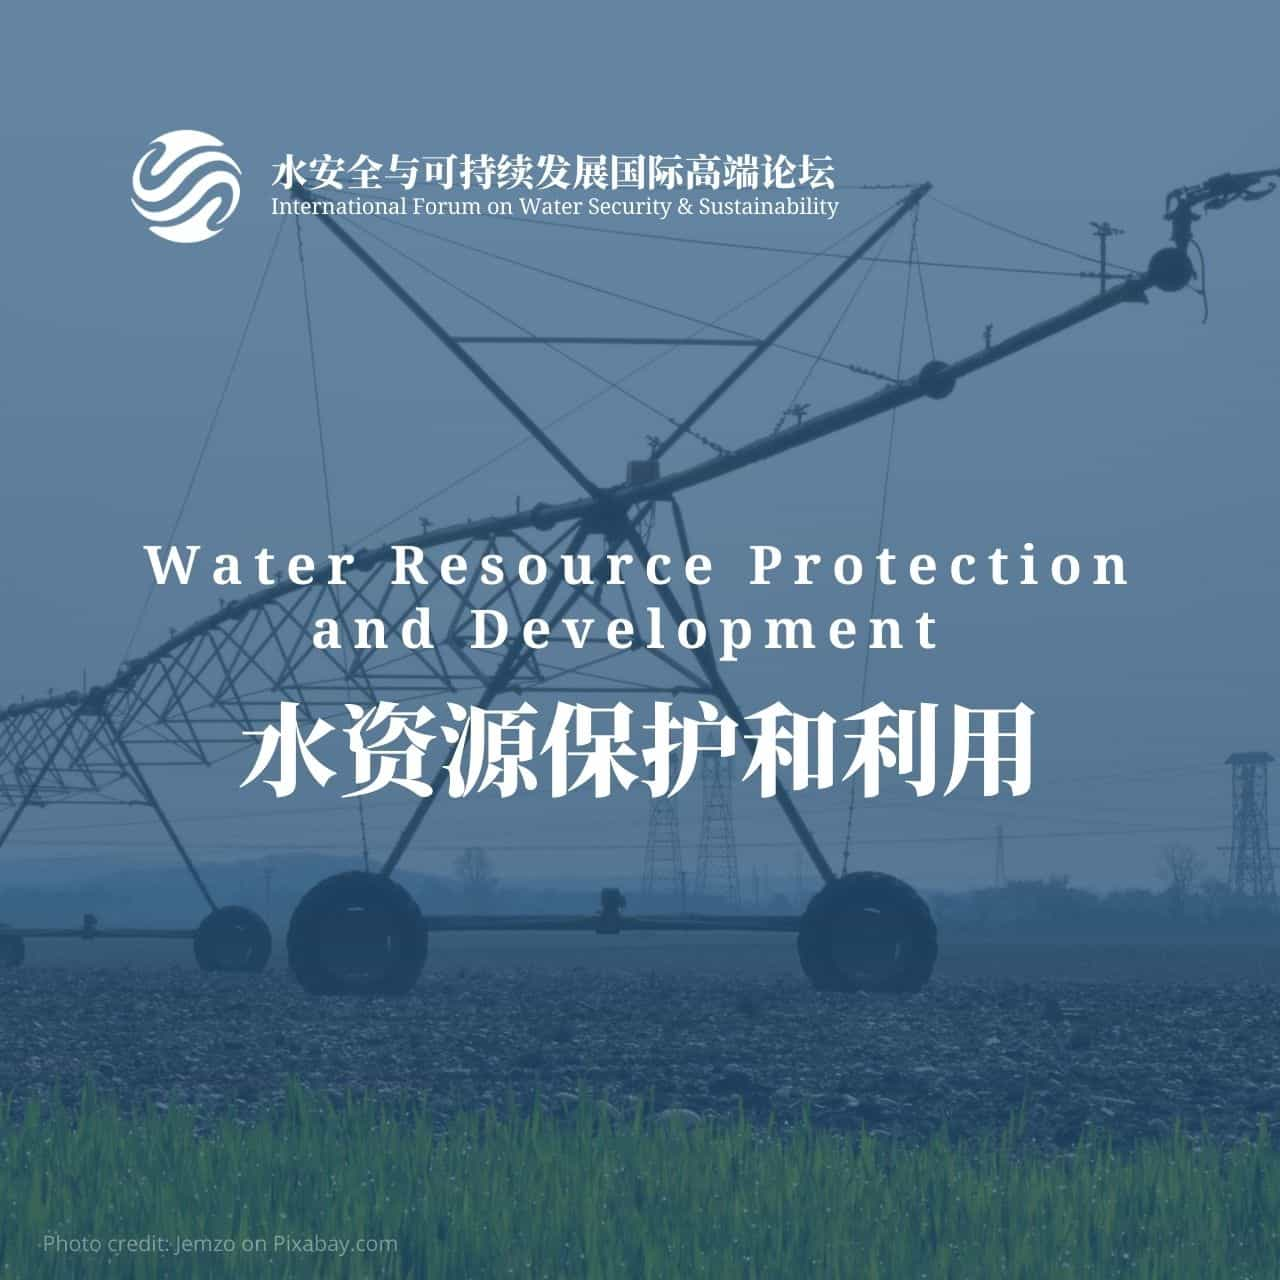 Water resource protection and development